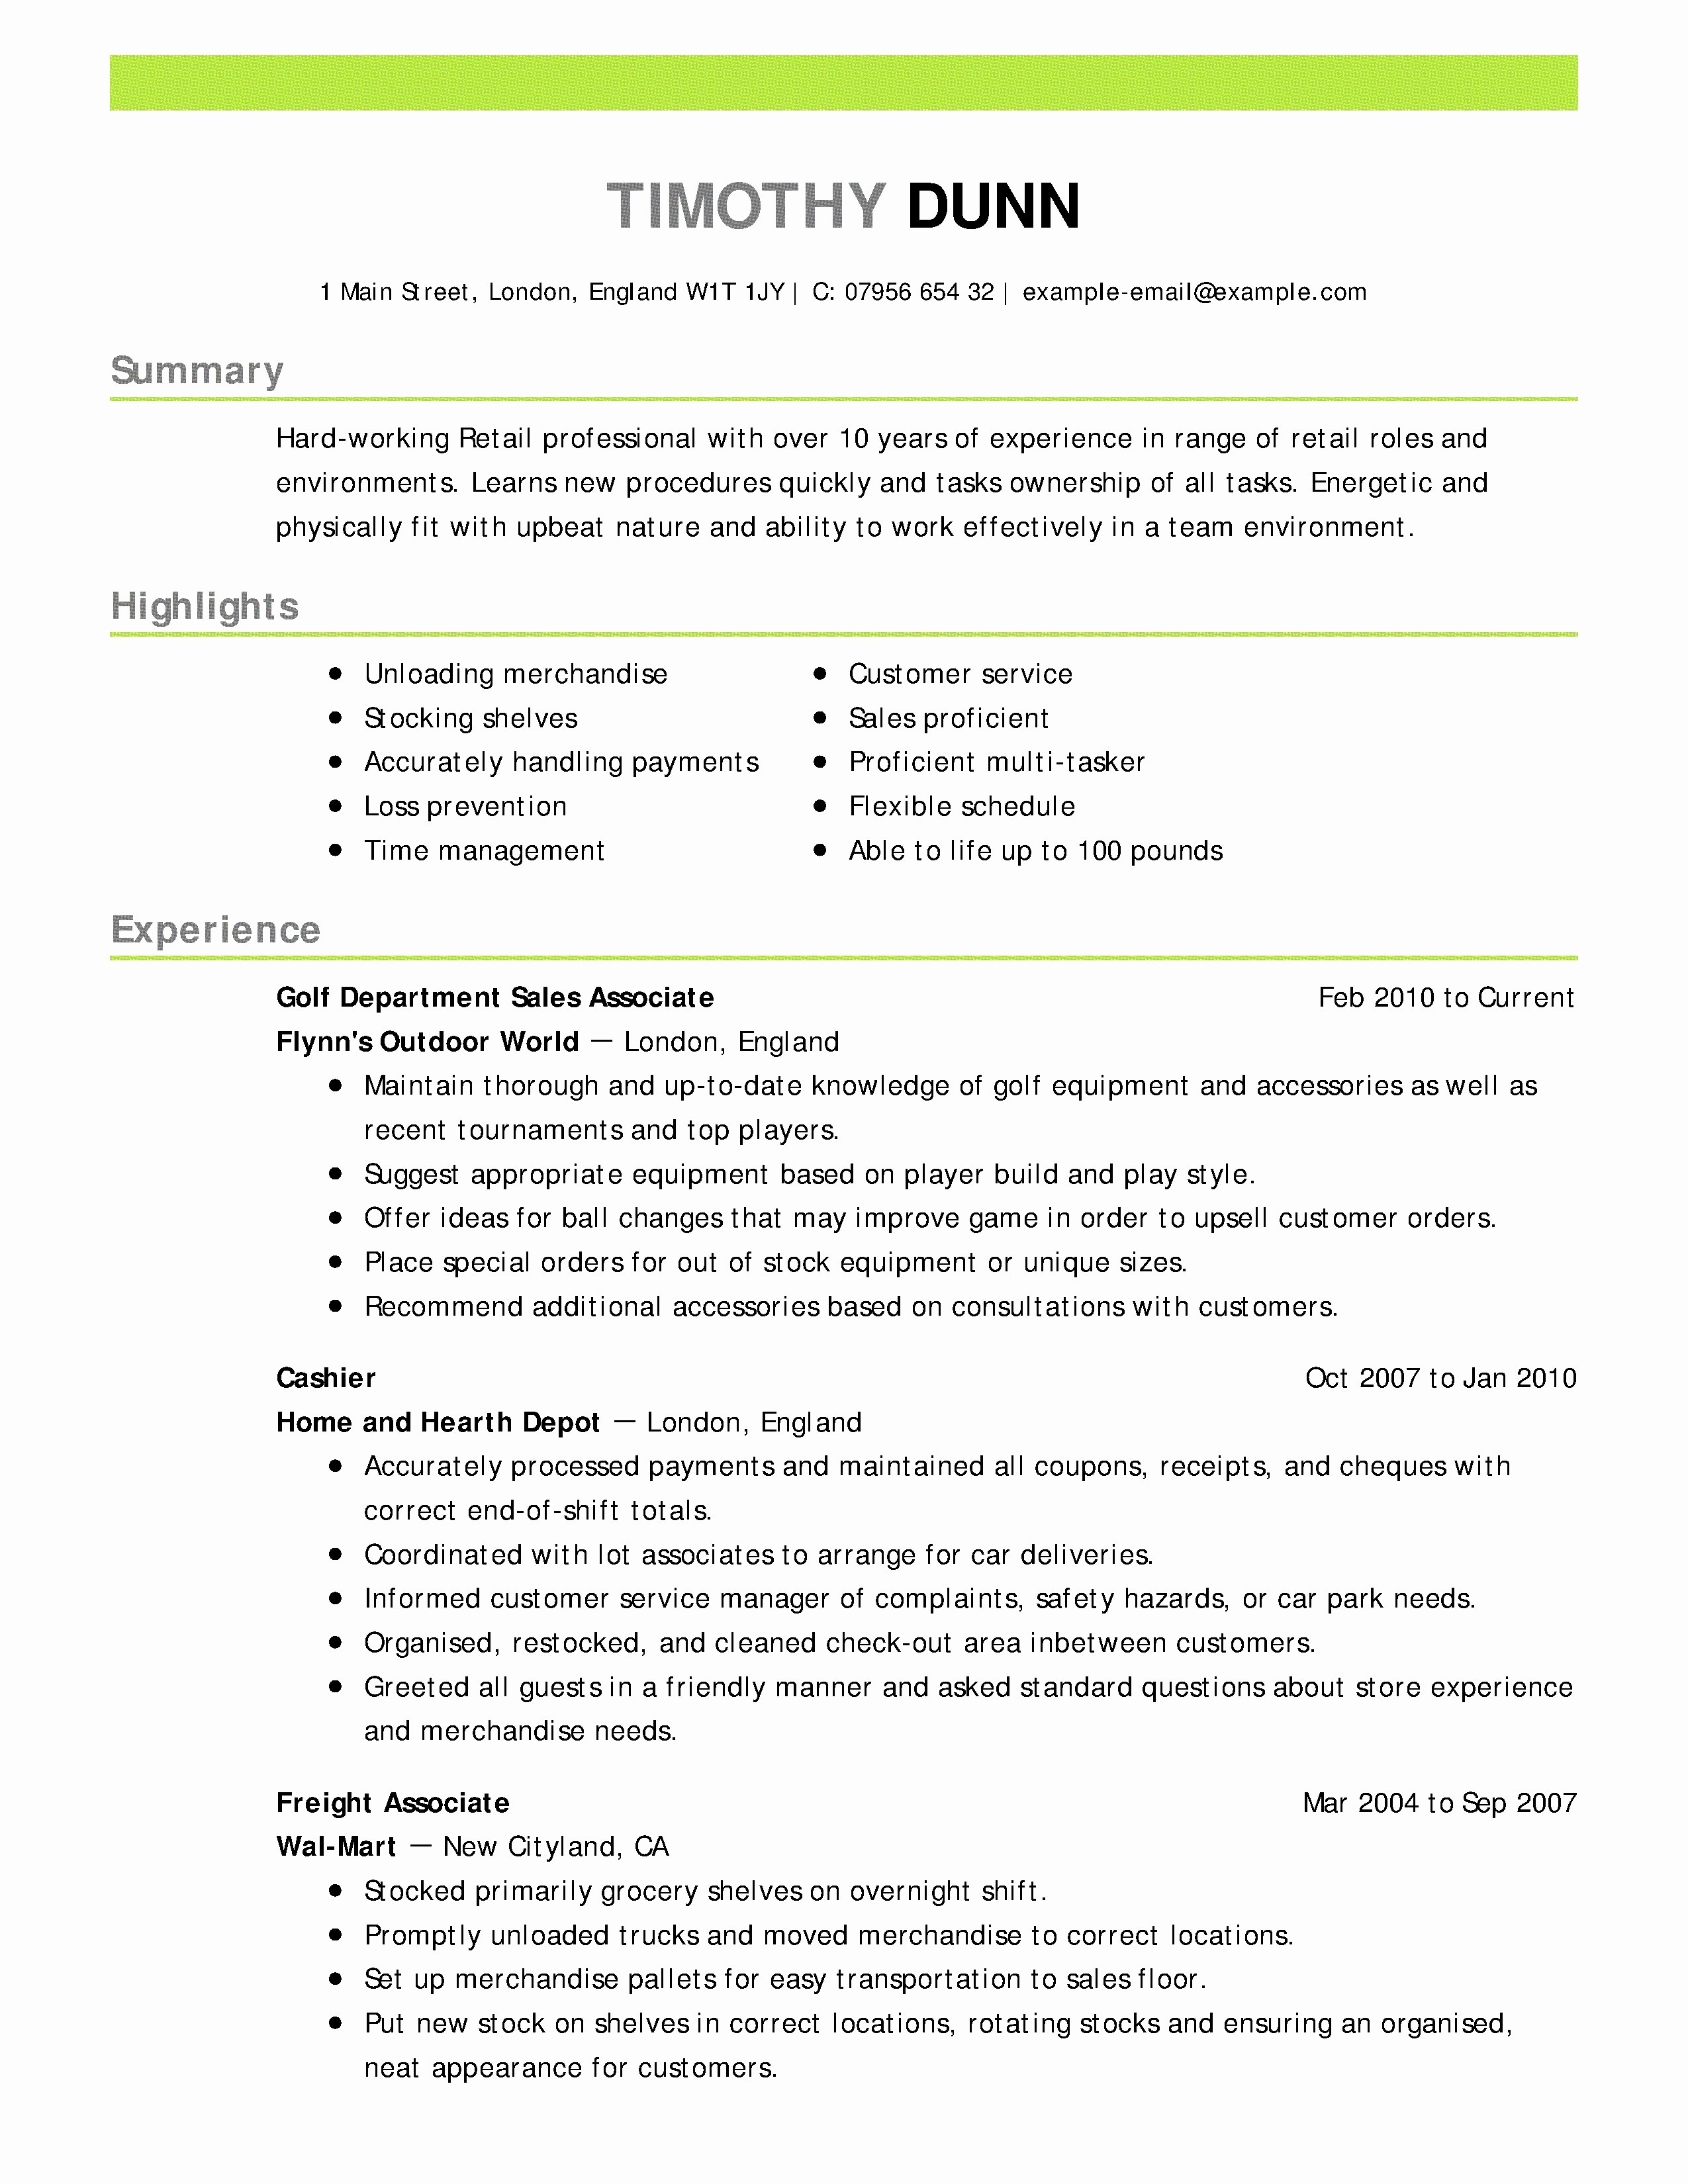 Customer Service Objective Resume Sample - 25 Fresh Good Resume Objective Statement